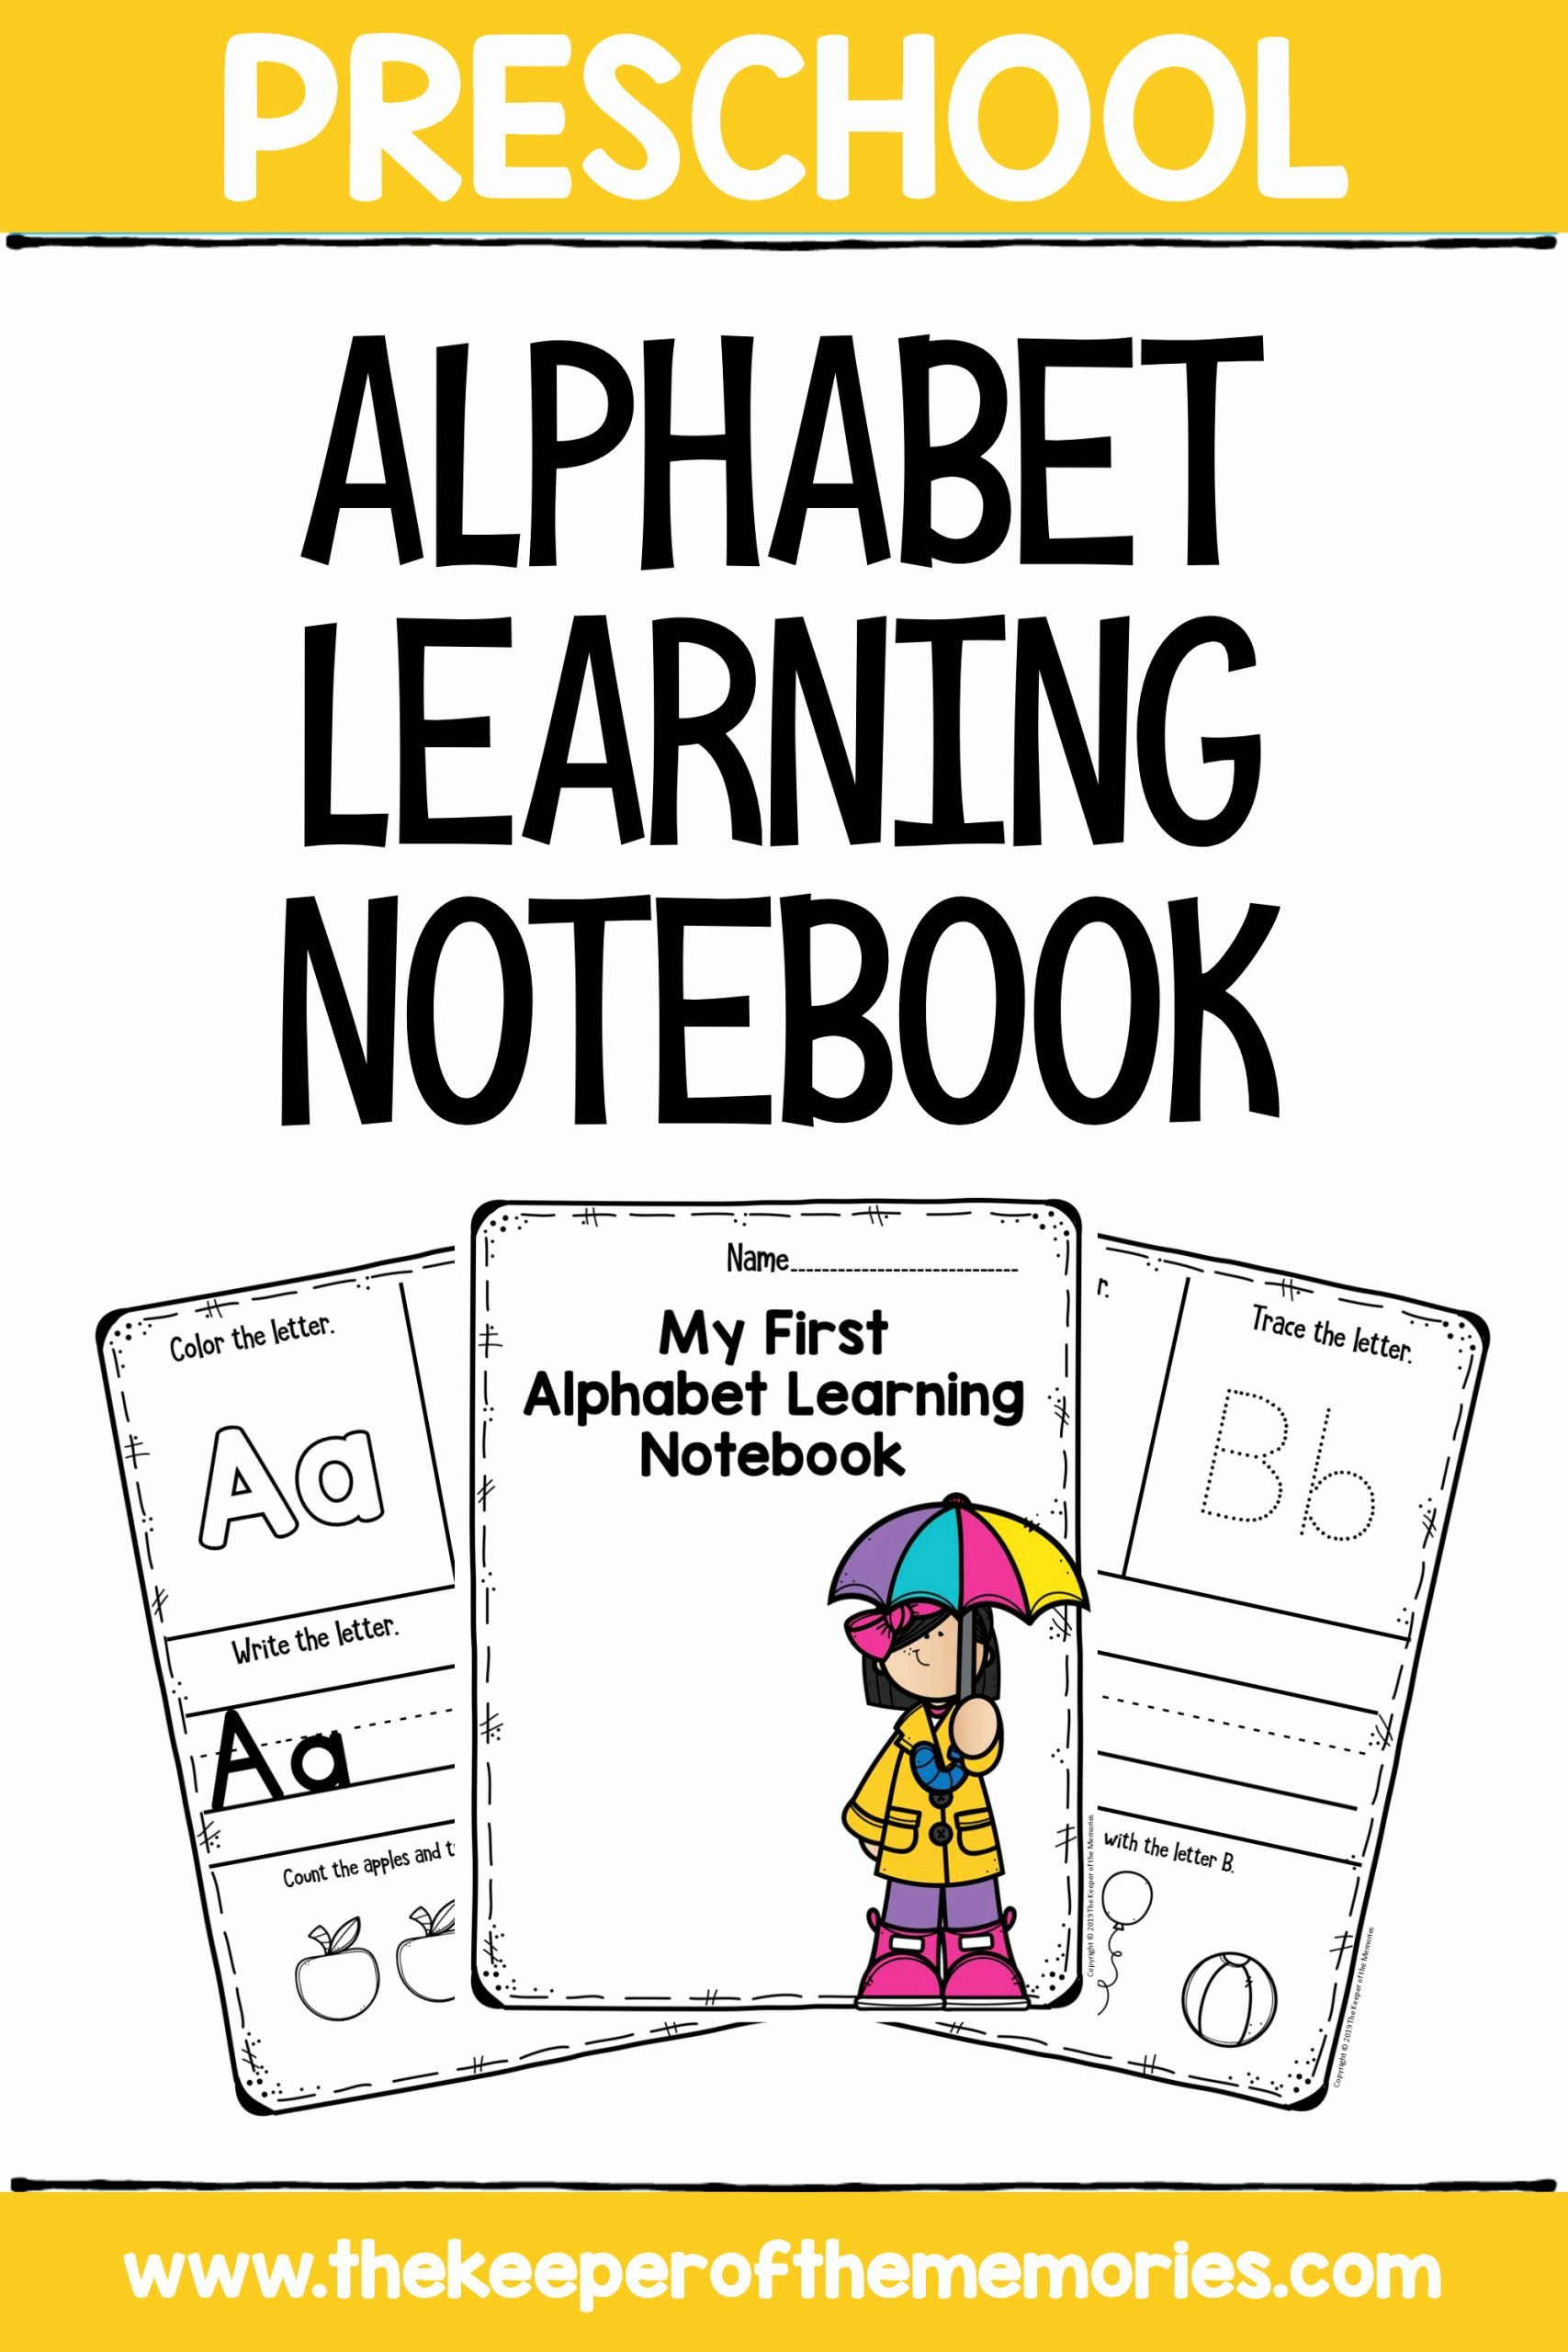 Worksheets for Preschoolers Letters top My First Alphabet Notebook Letters Preschool Worksheets